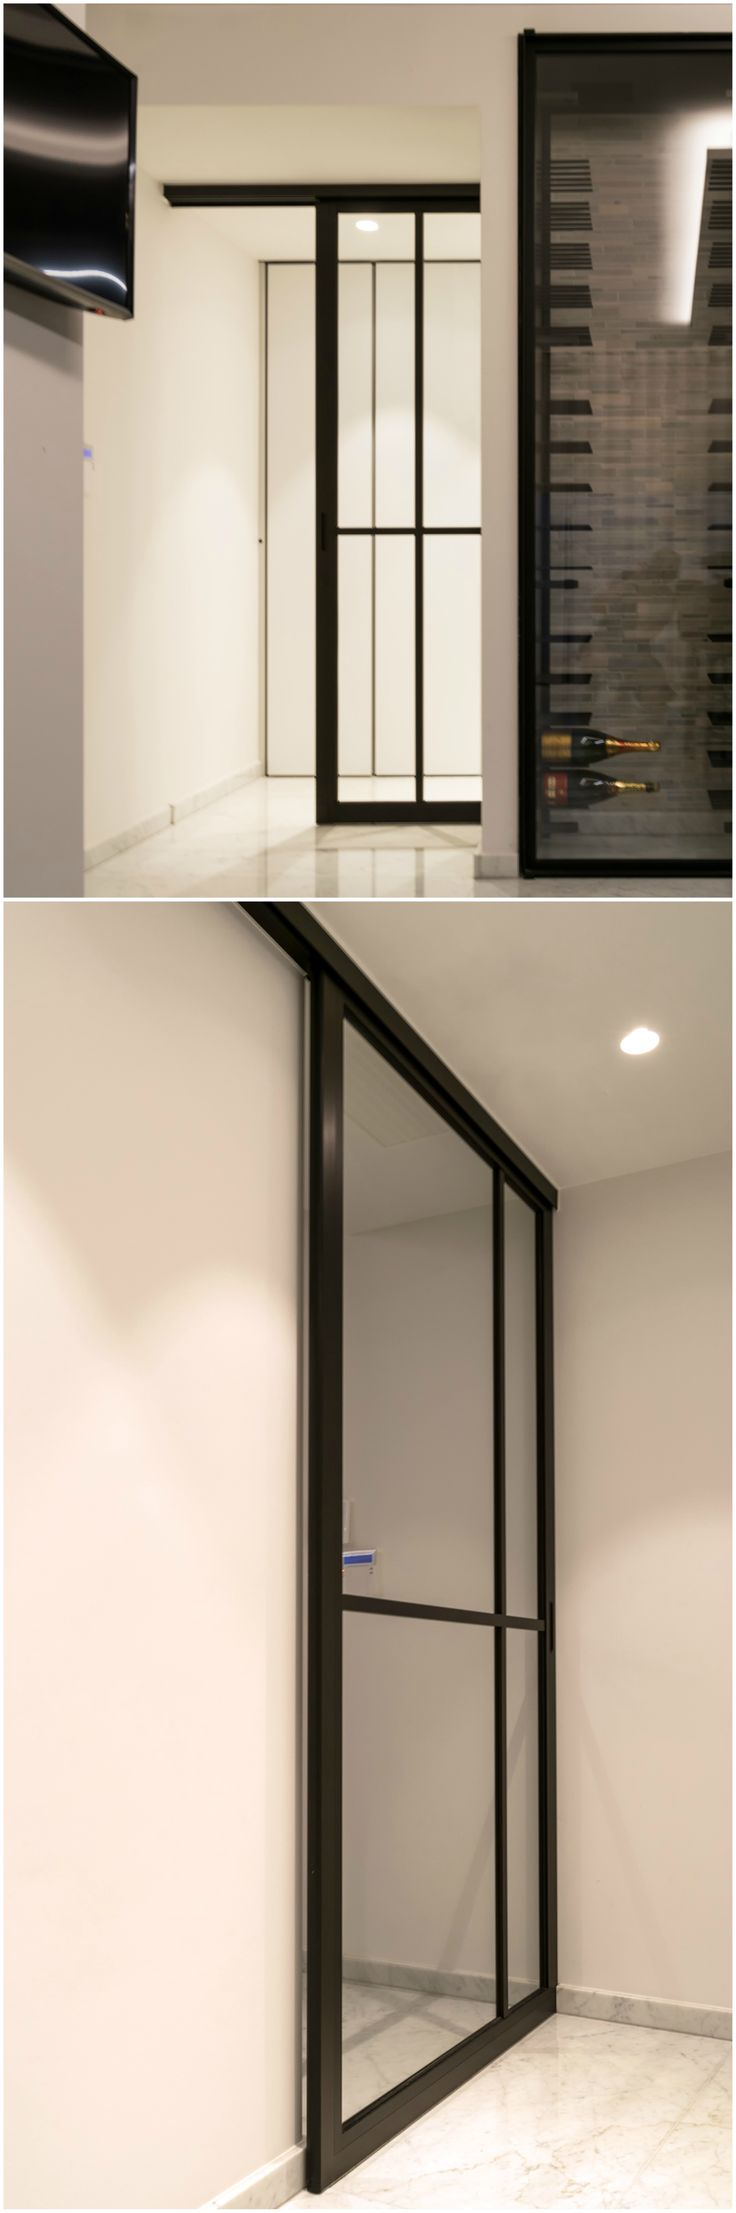 229 best modern interior doors images on pinterest concealed glass sliding door with a black anodized frame steel look planetlyrics Choice Image